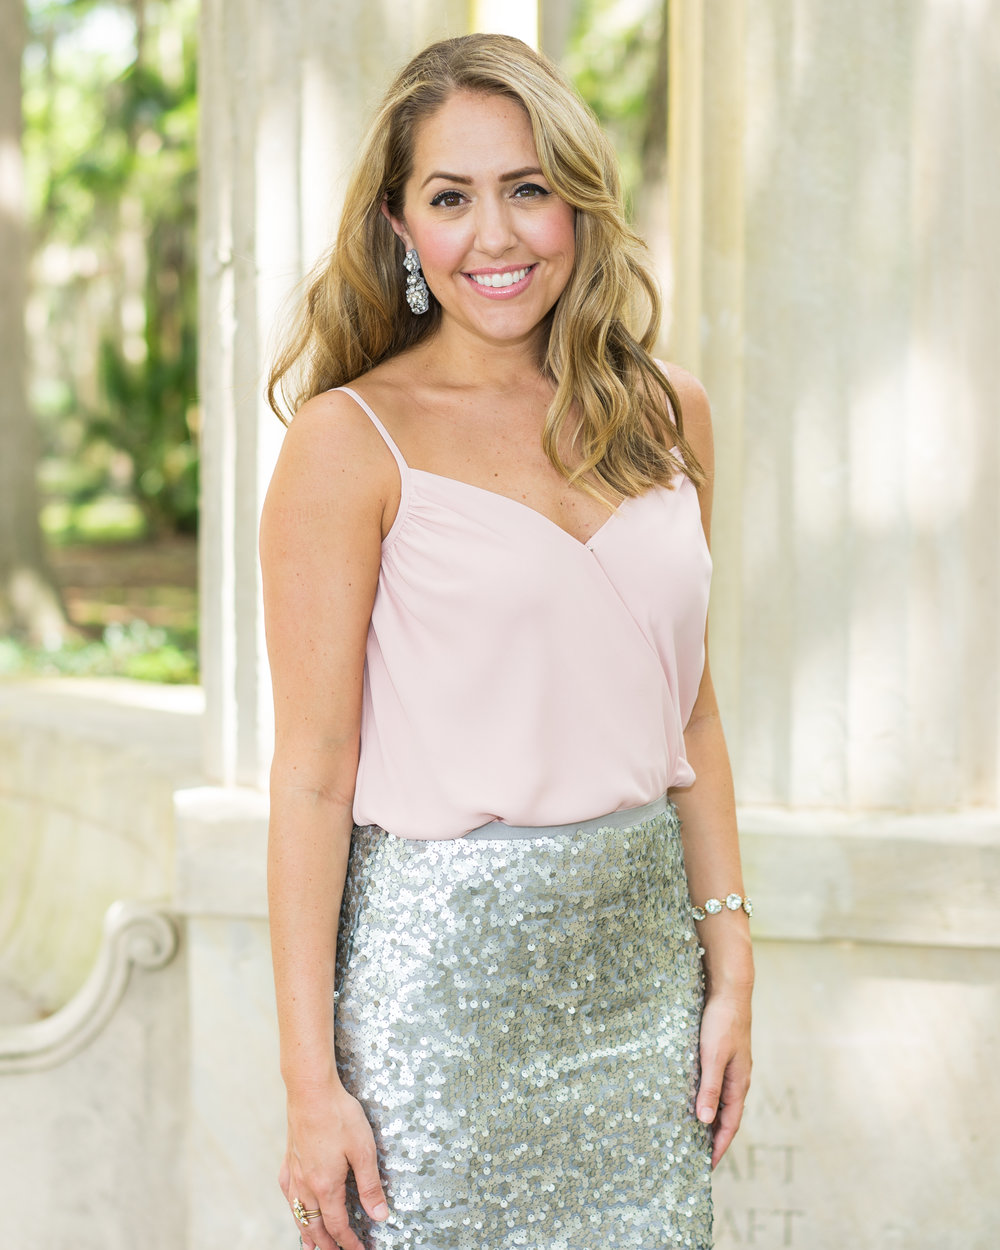 Blush bodysuit, silver sequin skirt